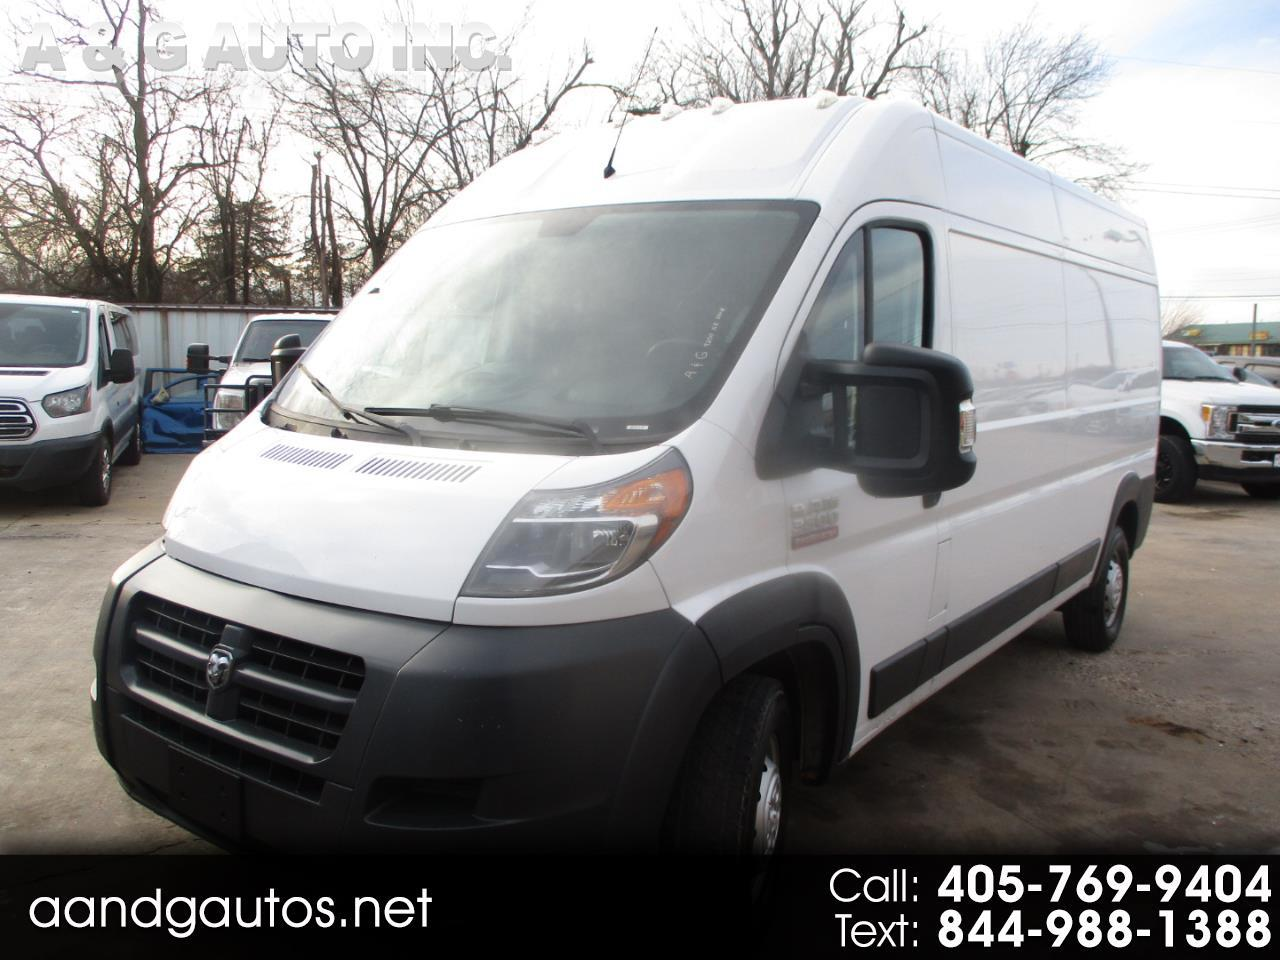 RAM Promaster 3500 High Roof Tradesman 159-in. WB 2017